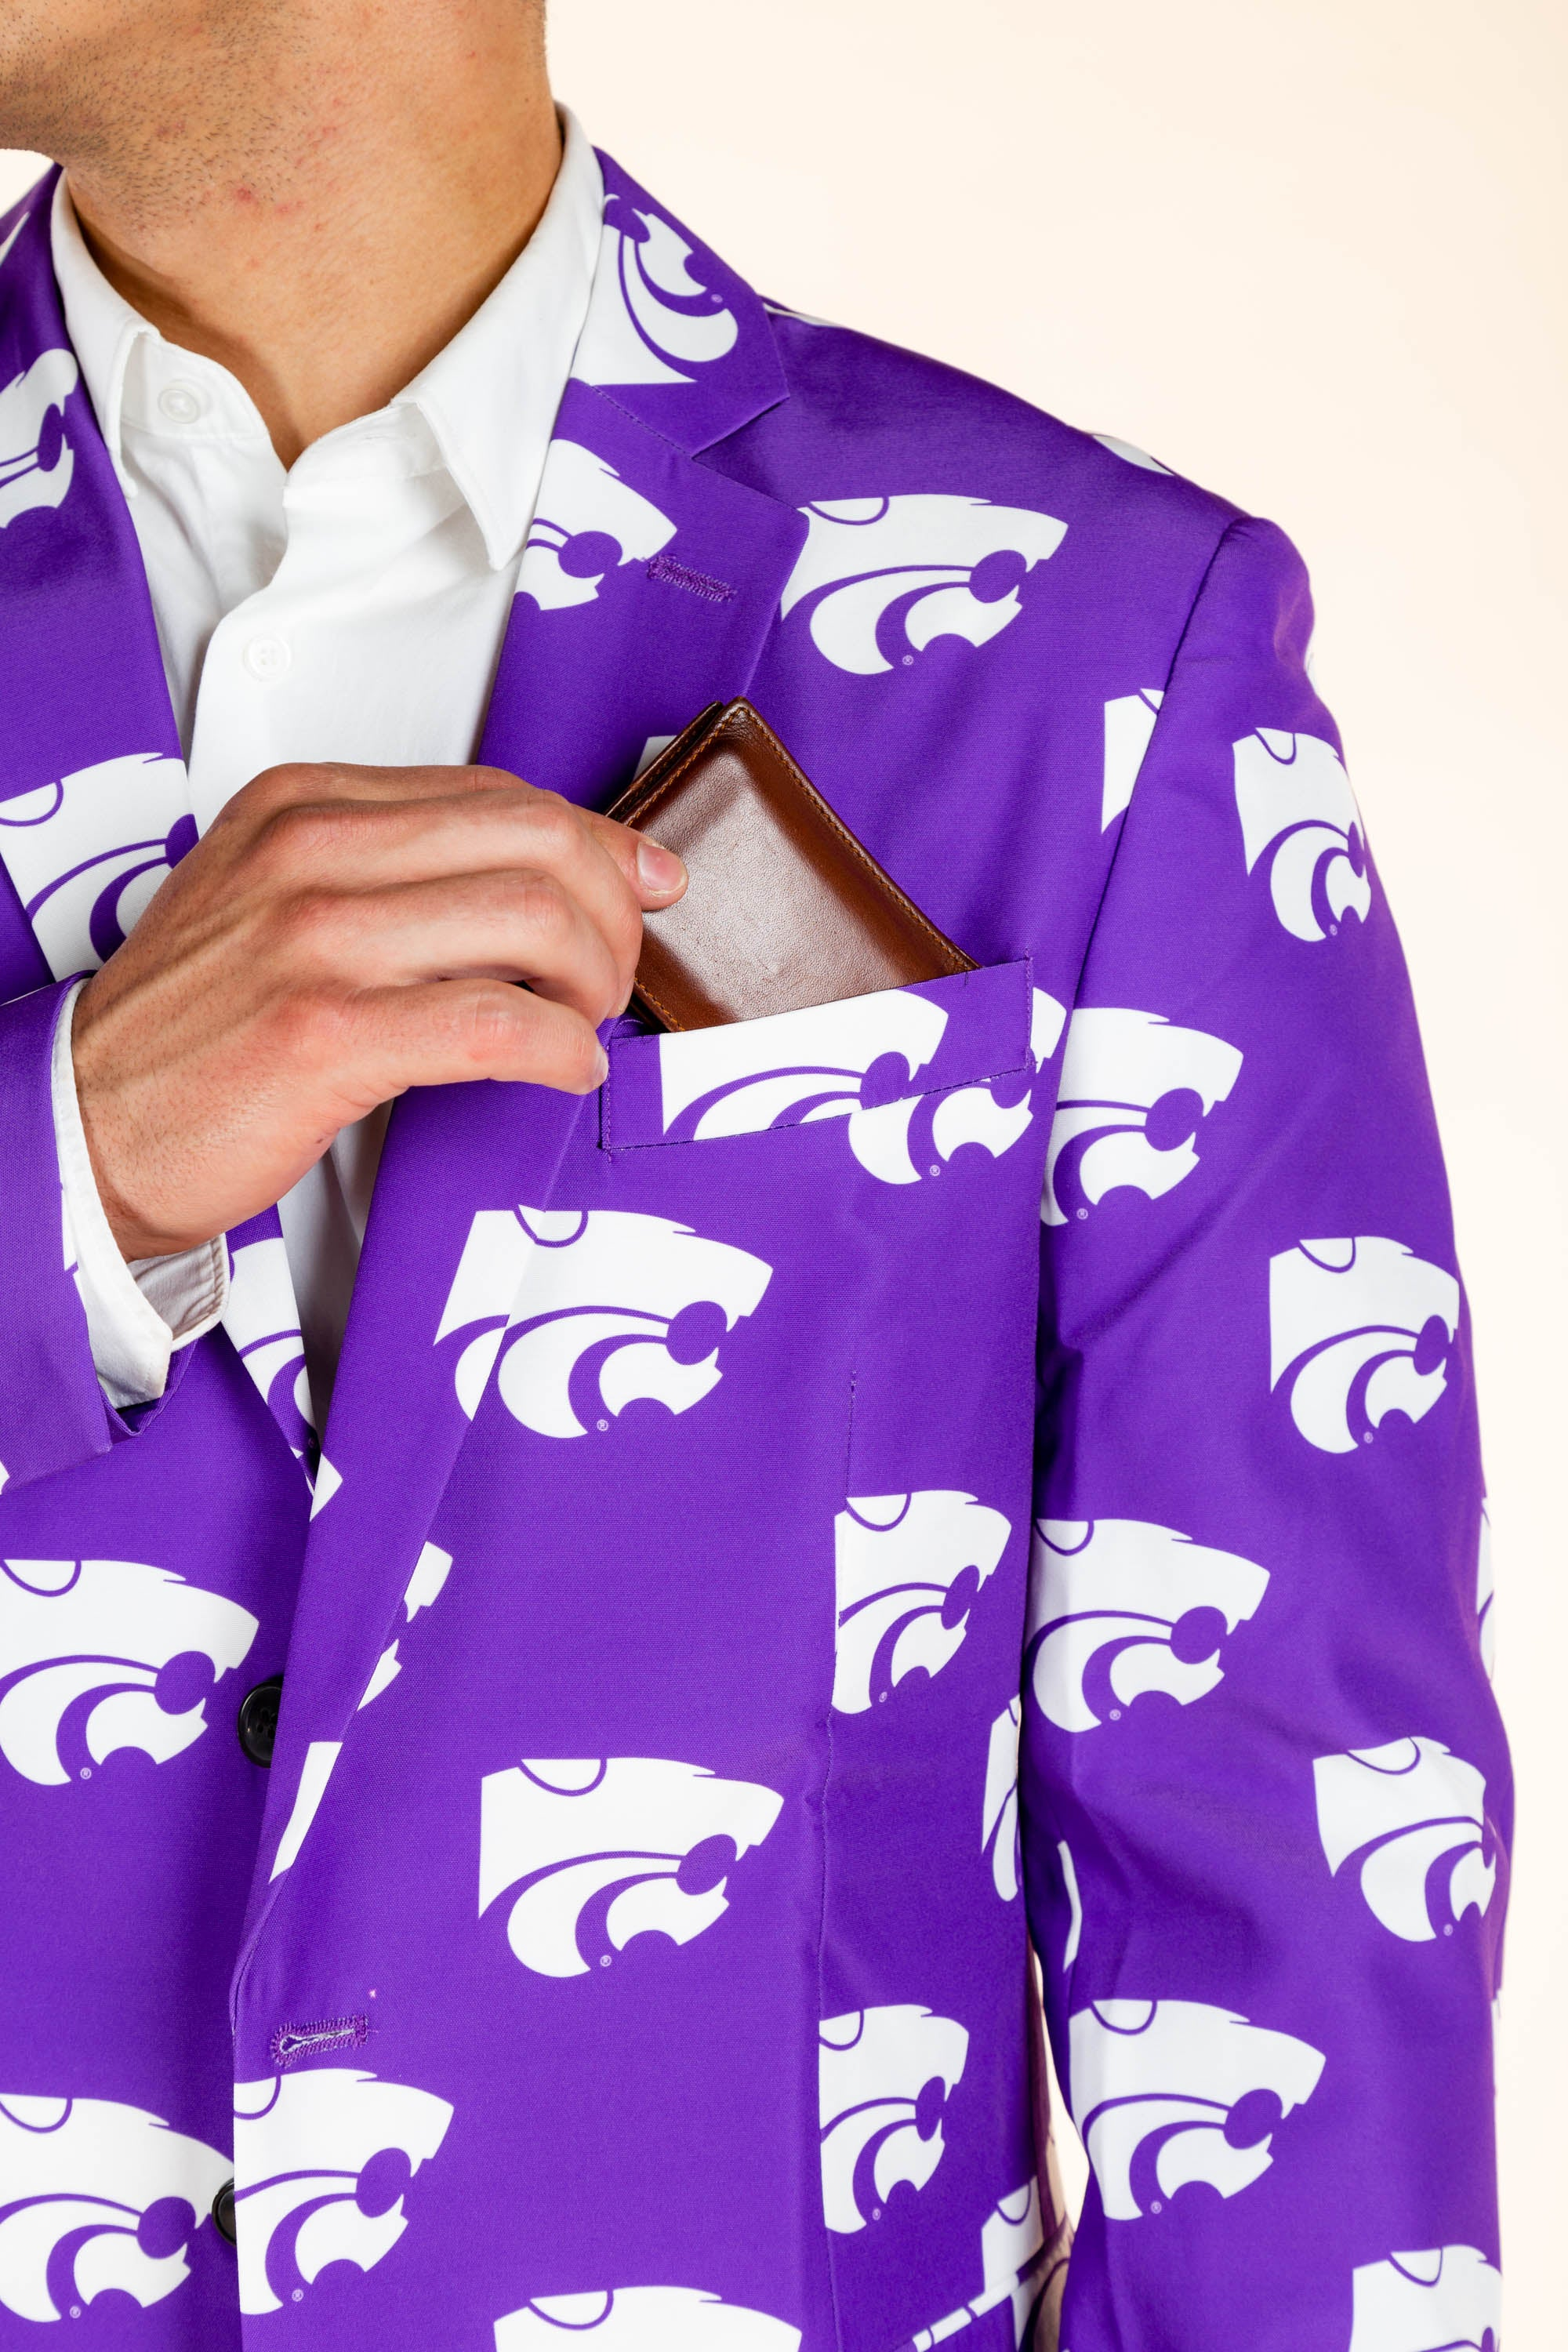 KSU gameday blazer